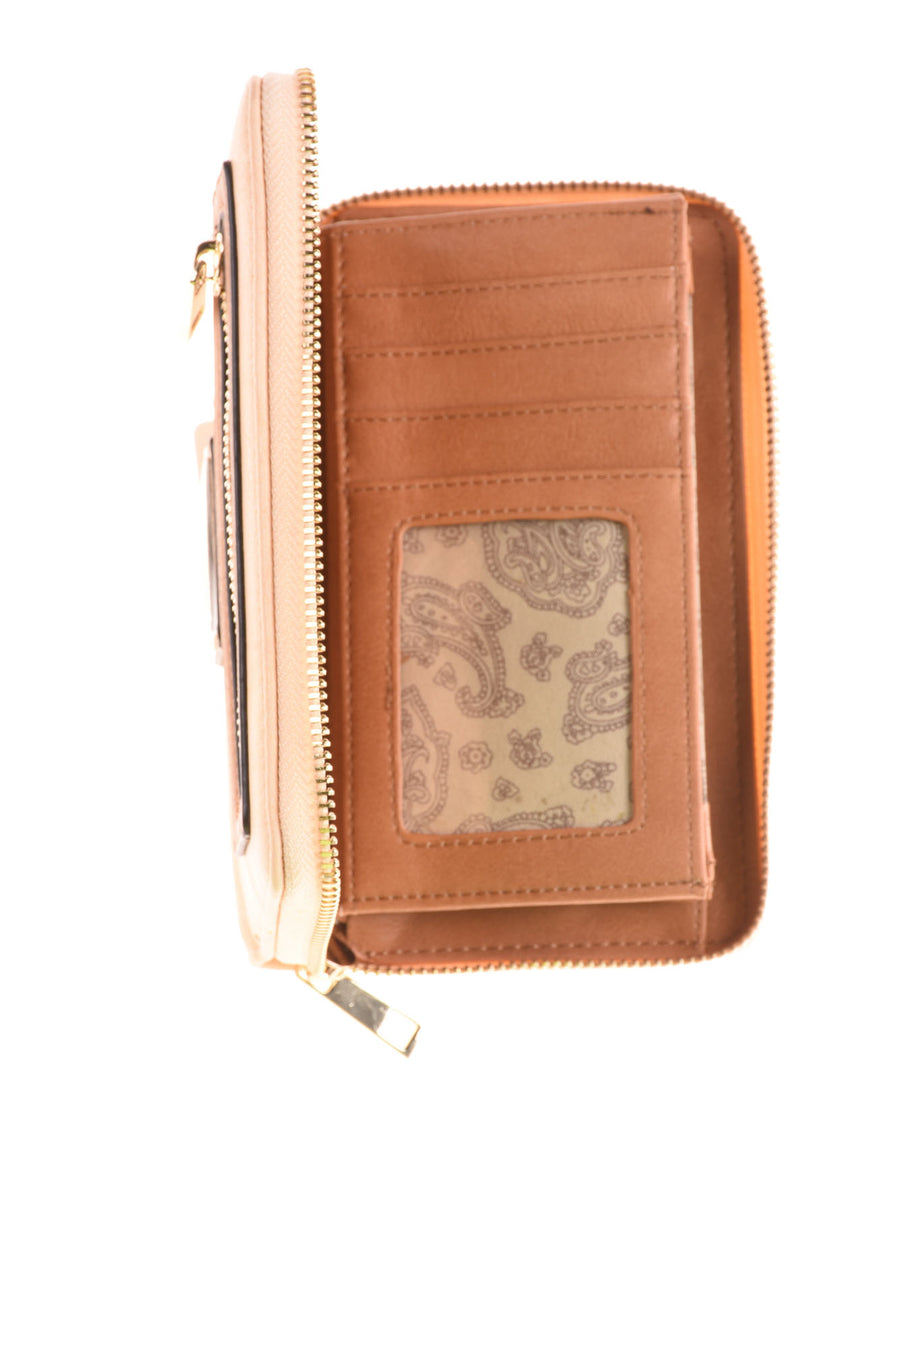 NEW Simply Noelle Women's Wallet N/A Beige & Brown